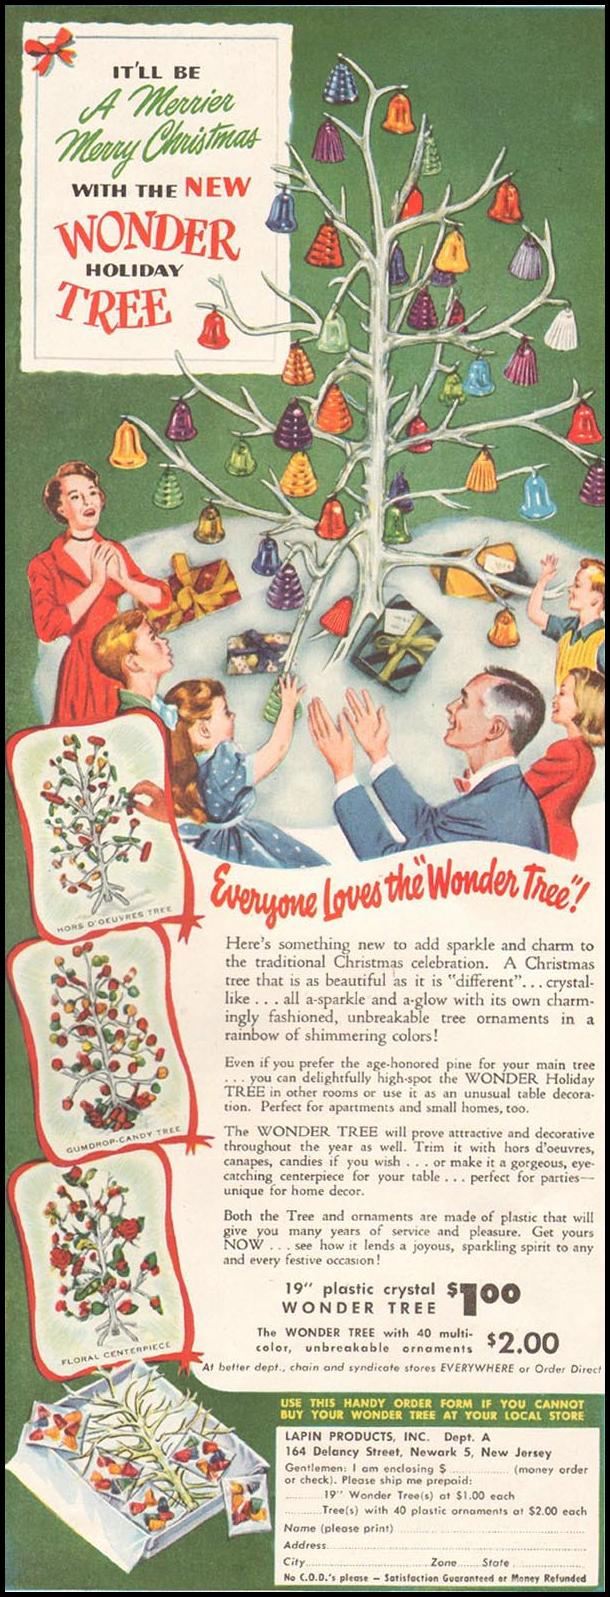 WONDER HOLIDAY TREE LADIES' HOME JOURNAL 11/01/1950 p. 143